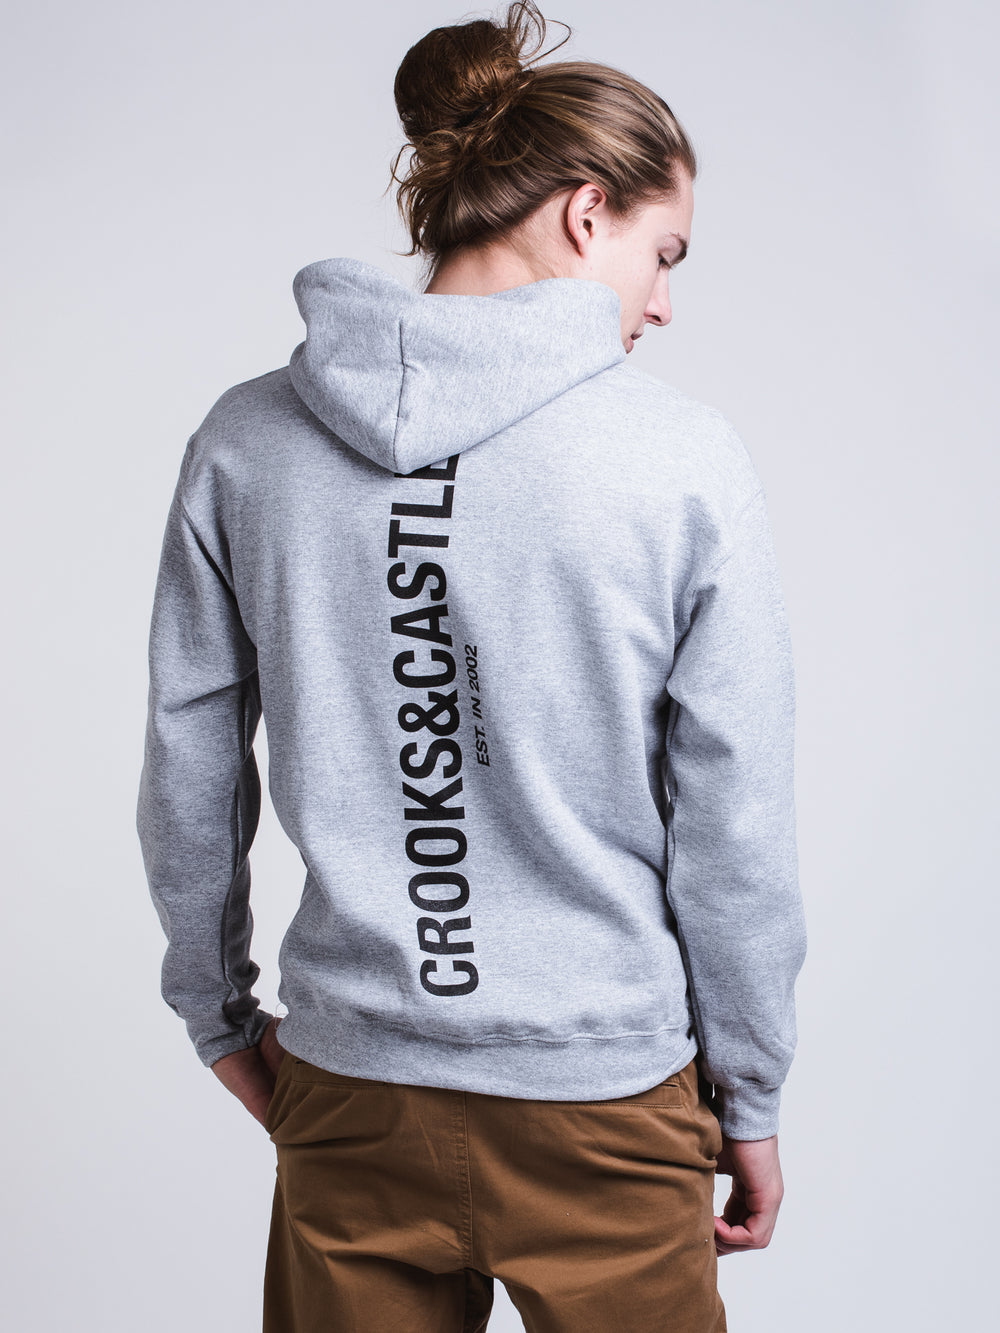 MENS SLICED CROOKS PULLOVER HOODIE - GREY